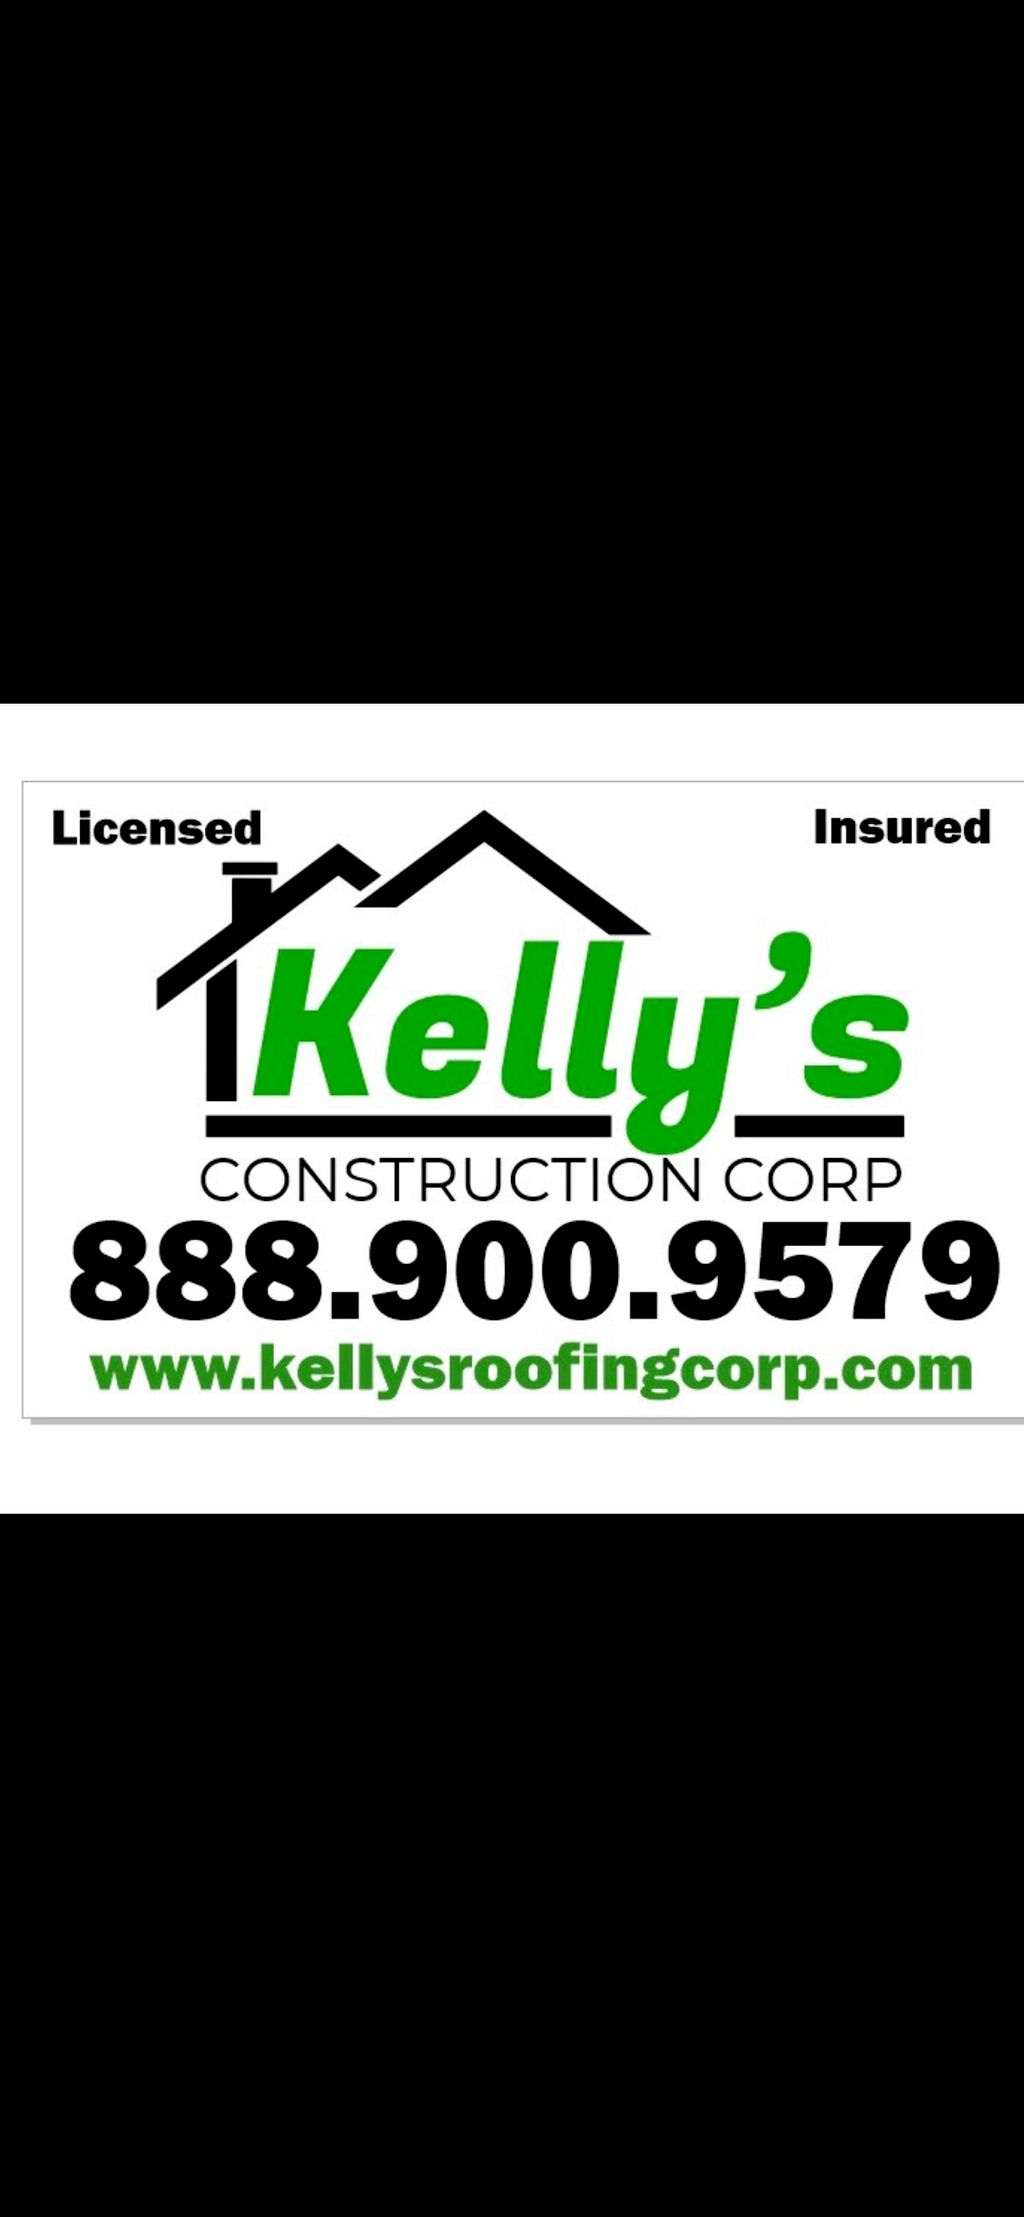 Kelly's construction corp